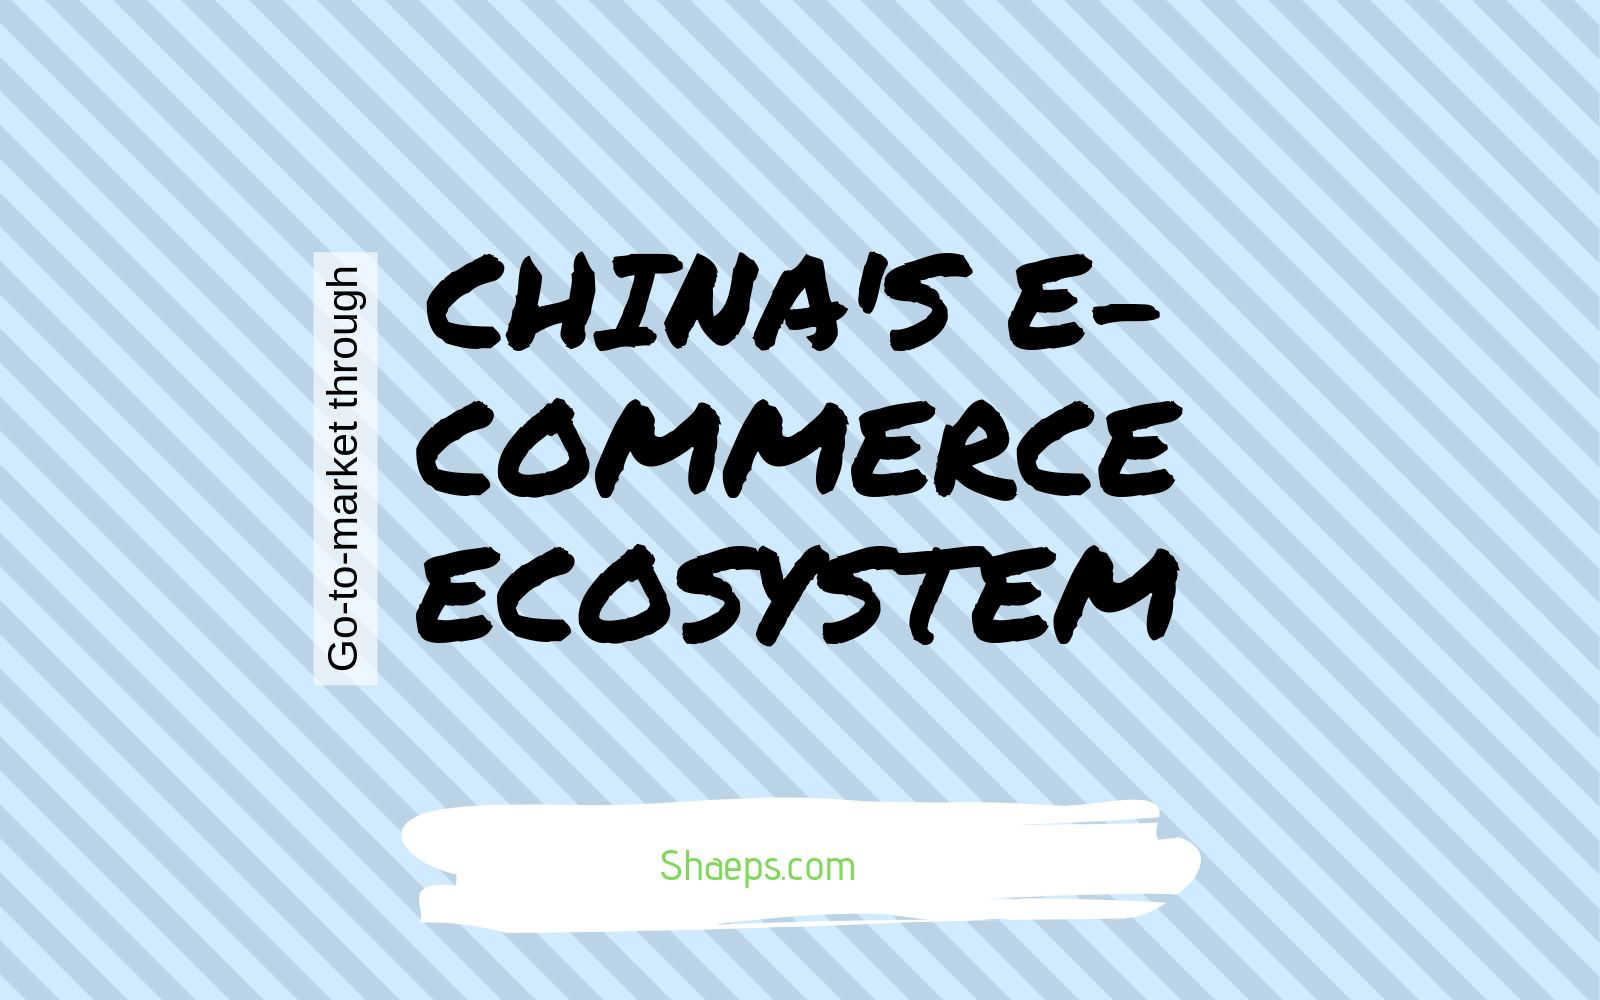 How to go to: Choosing between 5,000 Chinese e-commerce platforms